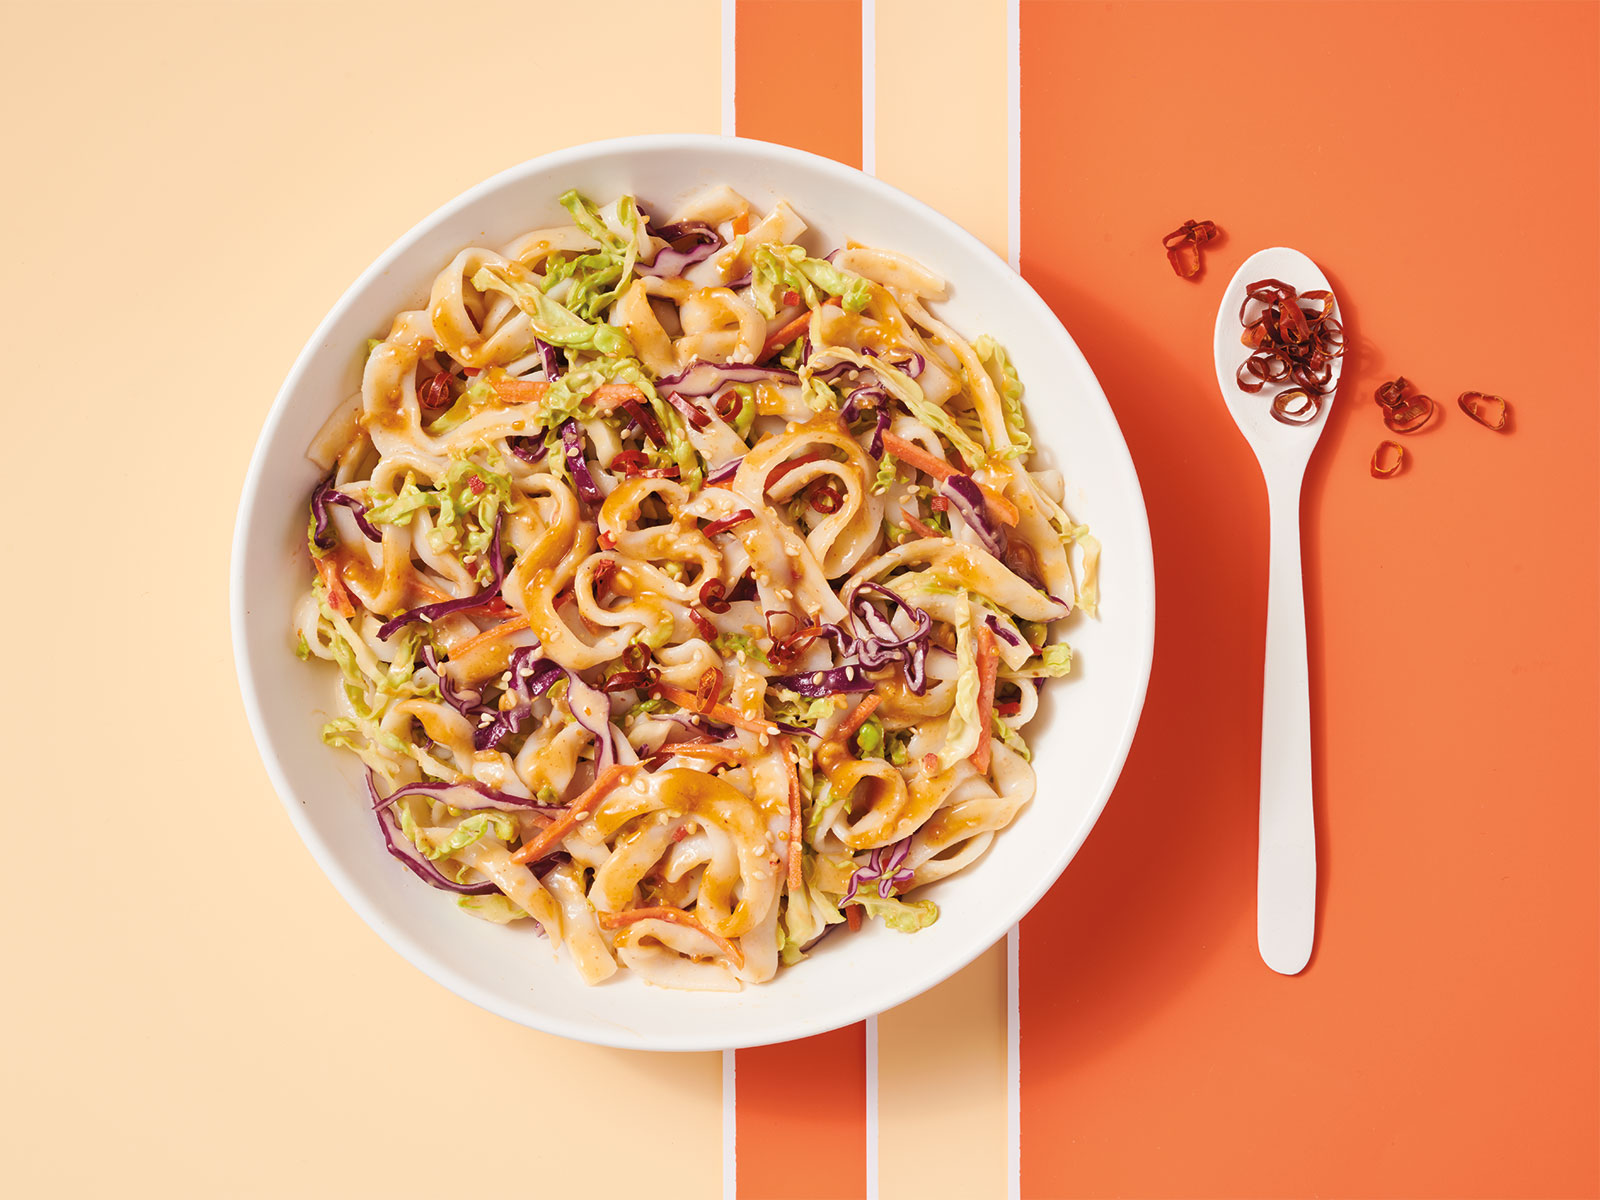 Protein Noodles with Peanut Sweet Chili Sauce